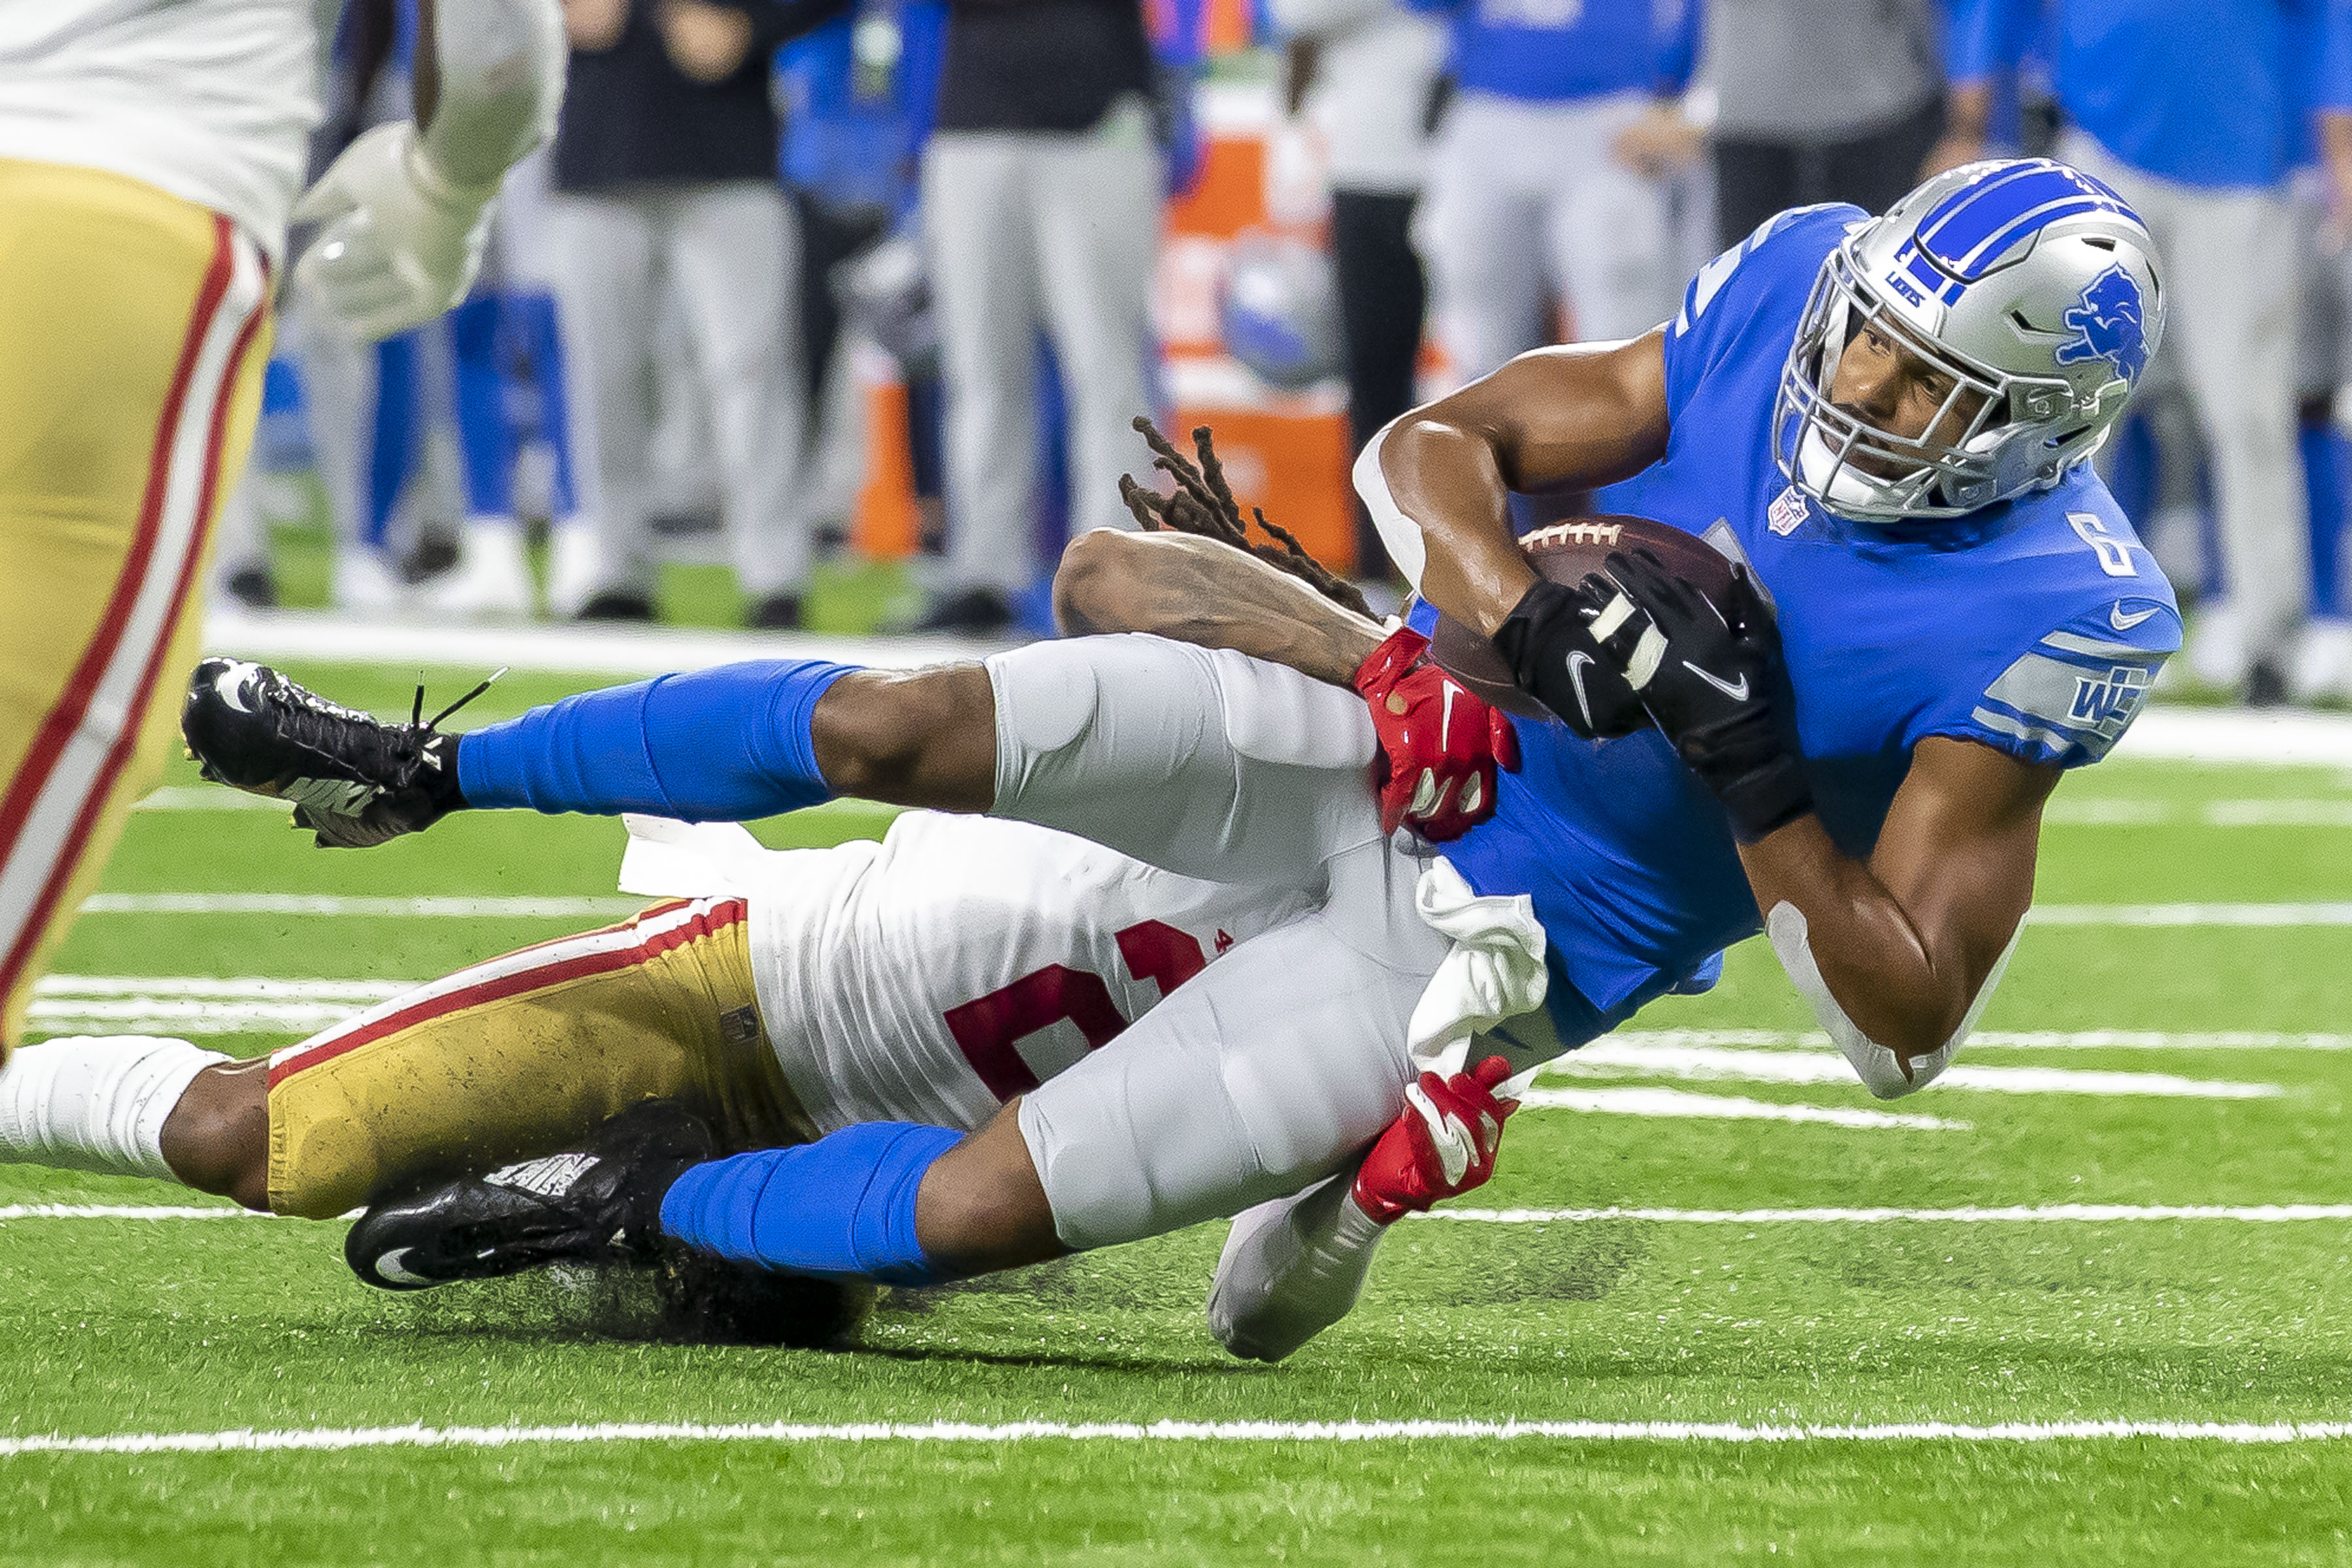 Detroit Lions wide receiver Tyrell Williams (6) catches the ball for a first down in the first quarter against the San Francisco 49ers at Ford Field.